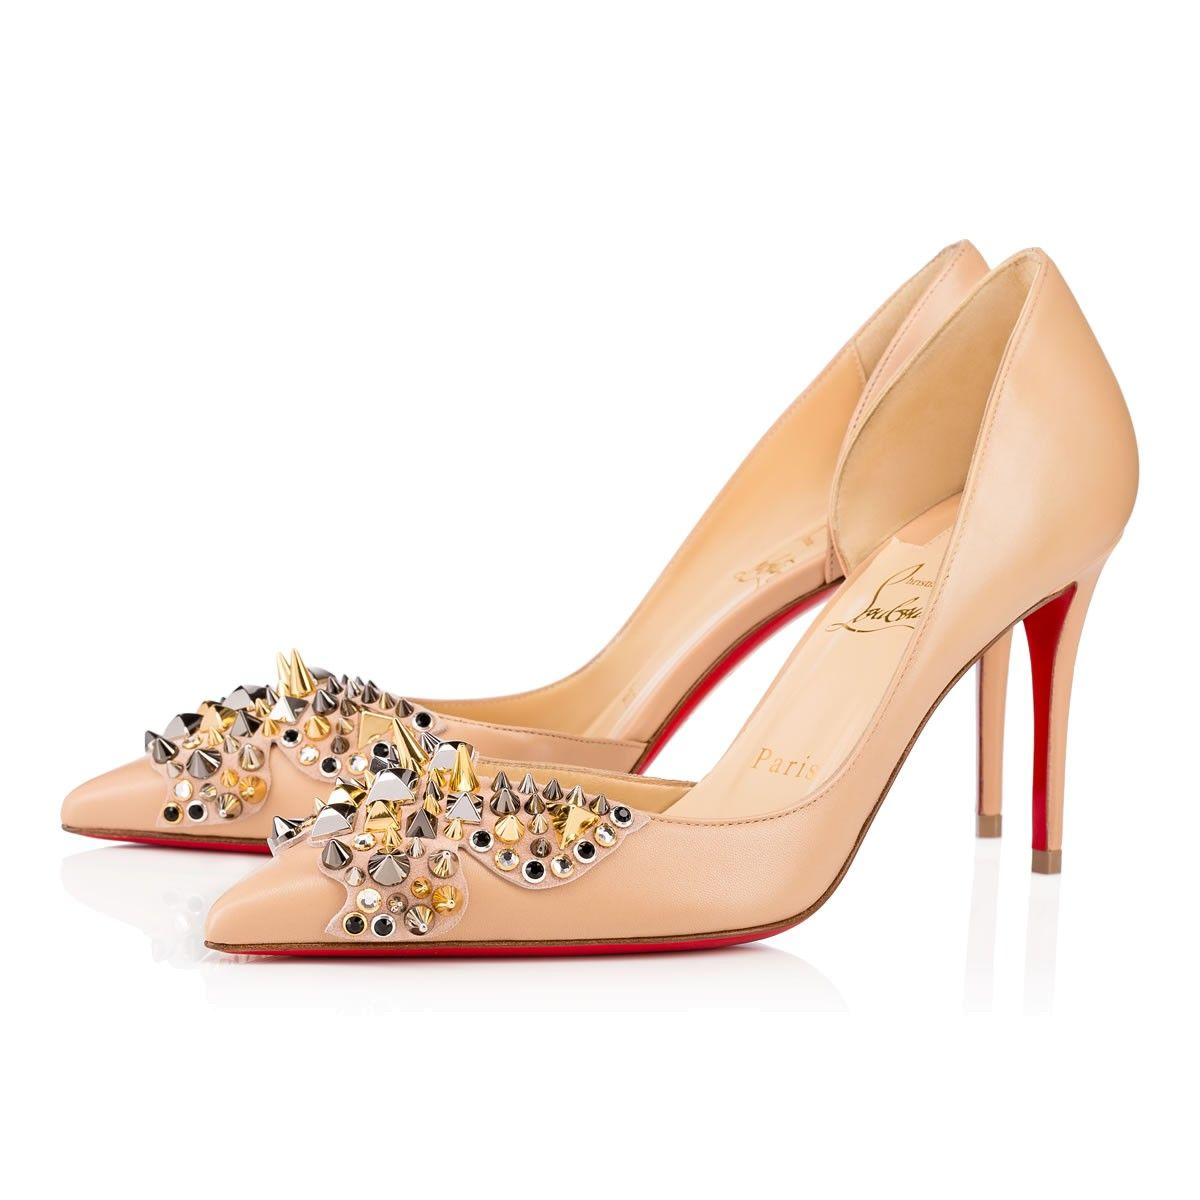 5094aae51e7 CHRISTIAN LOUBOUTIN Farfaclou 85mm Version Doudou Leather.   christianlouboutin  shoes